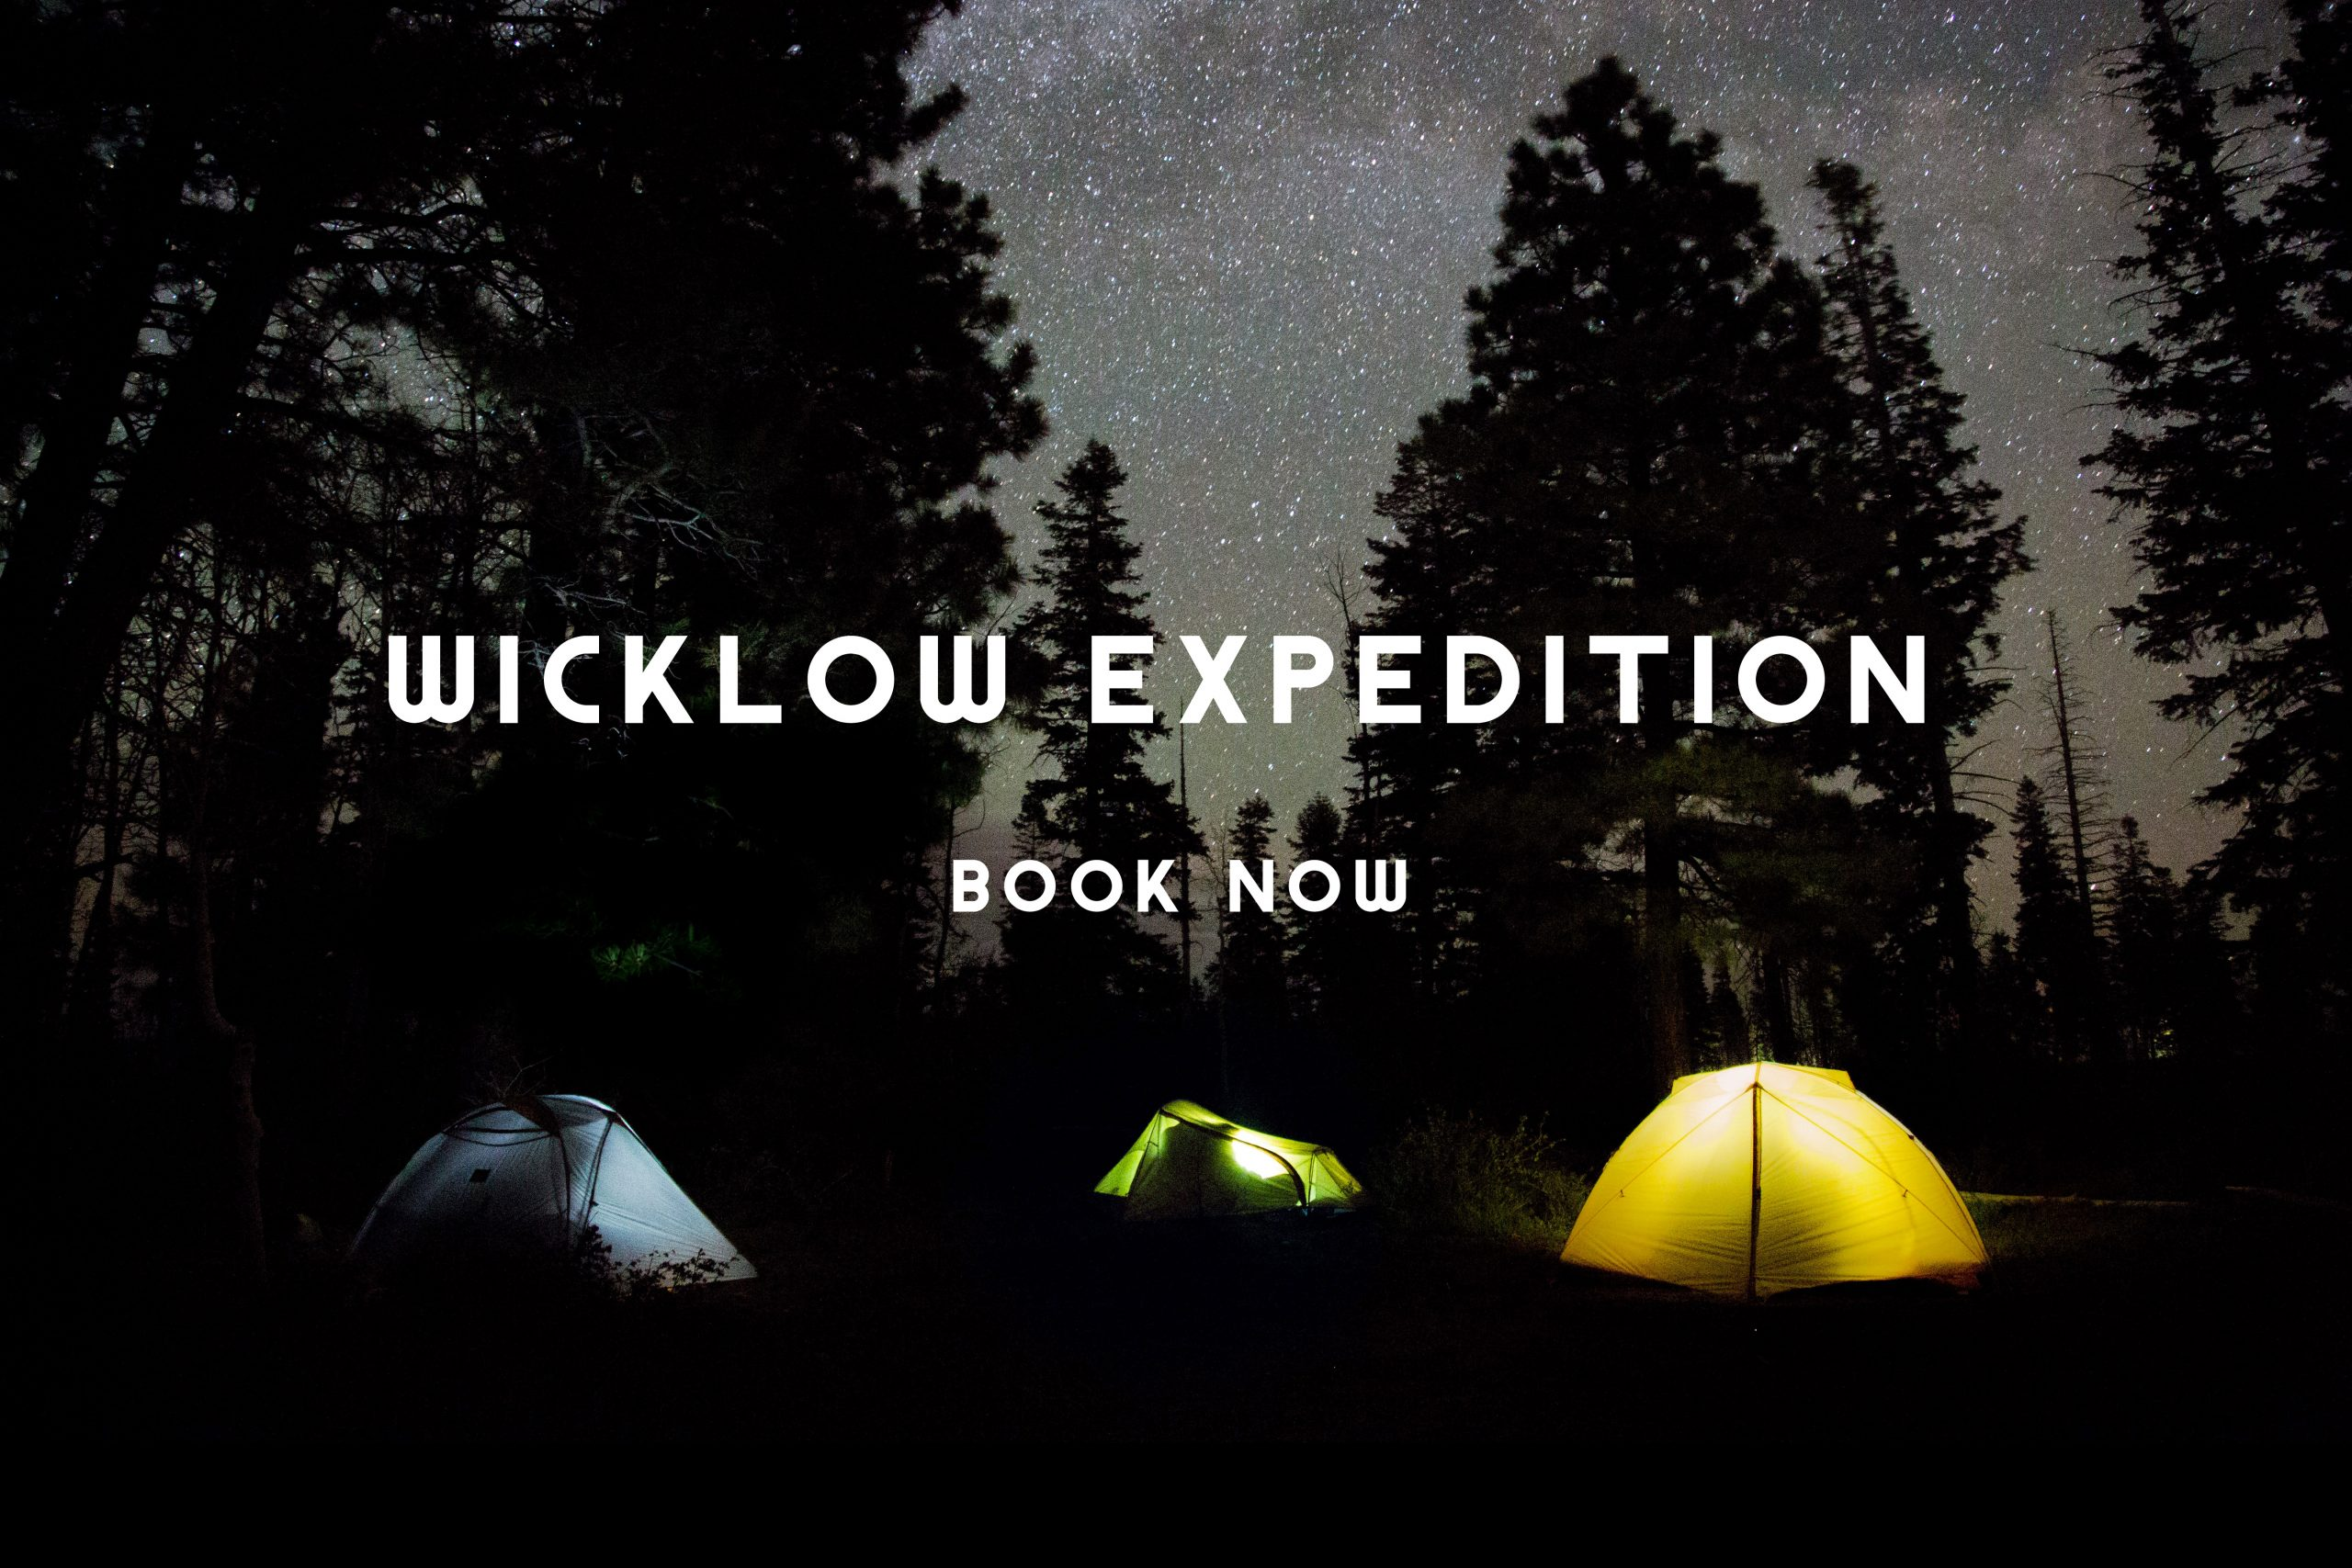 Wicklow Expeditions